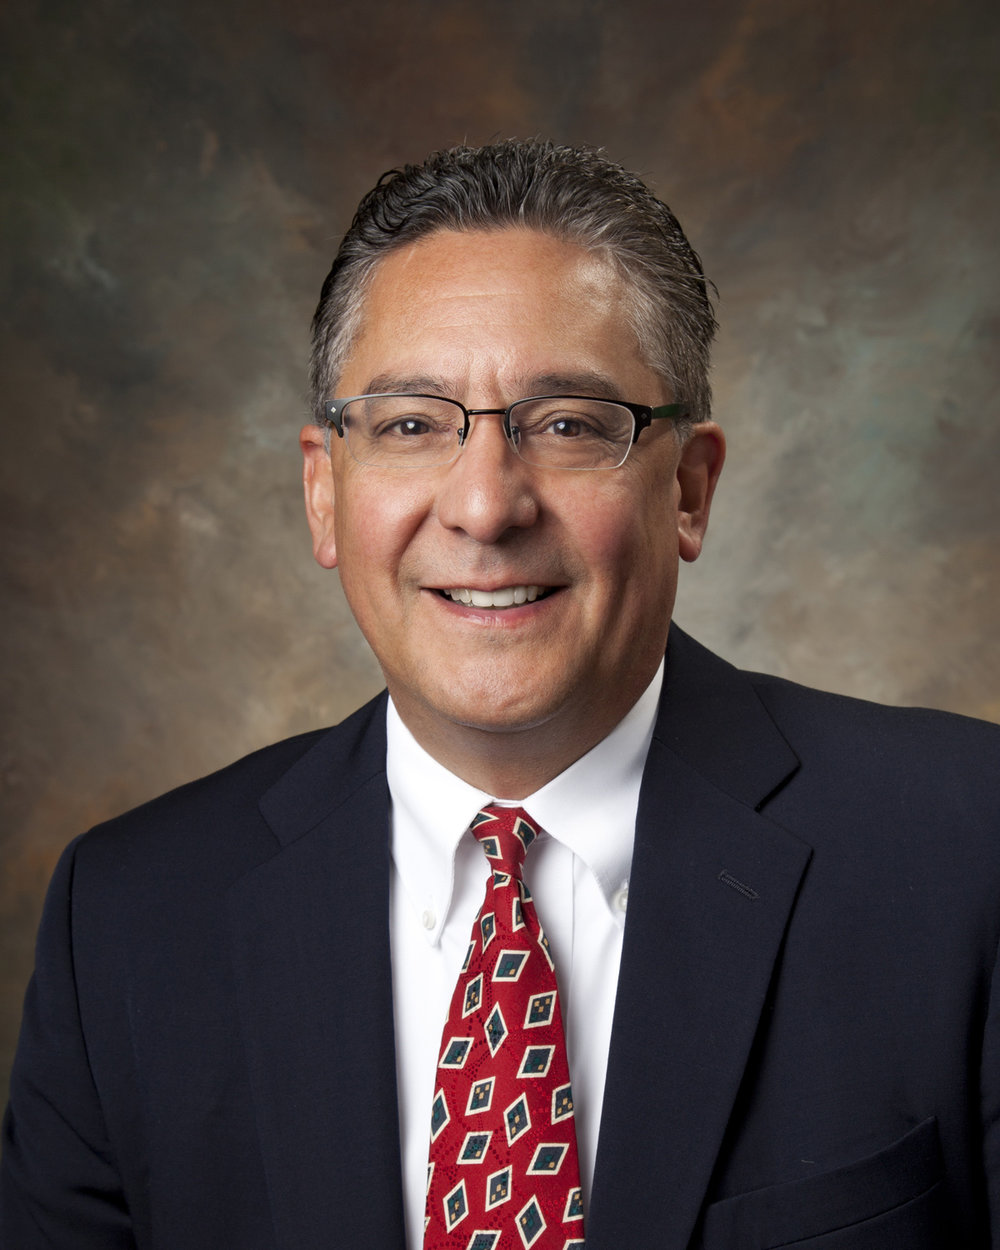 Rick Garza - Rick Garza has been with the Washington State Liquor and Cannabis Board (WSLCB) since 1997 and currently serves as Deputy Director. During Garza's career with WSLCB, he has also held the positions of Legislative and Tribal Liaison and Policy Director.